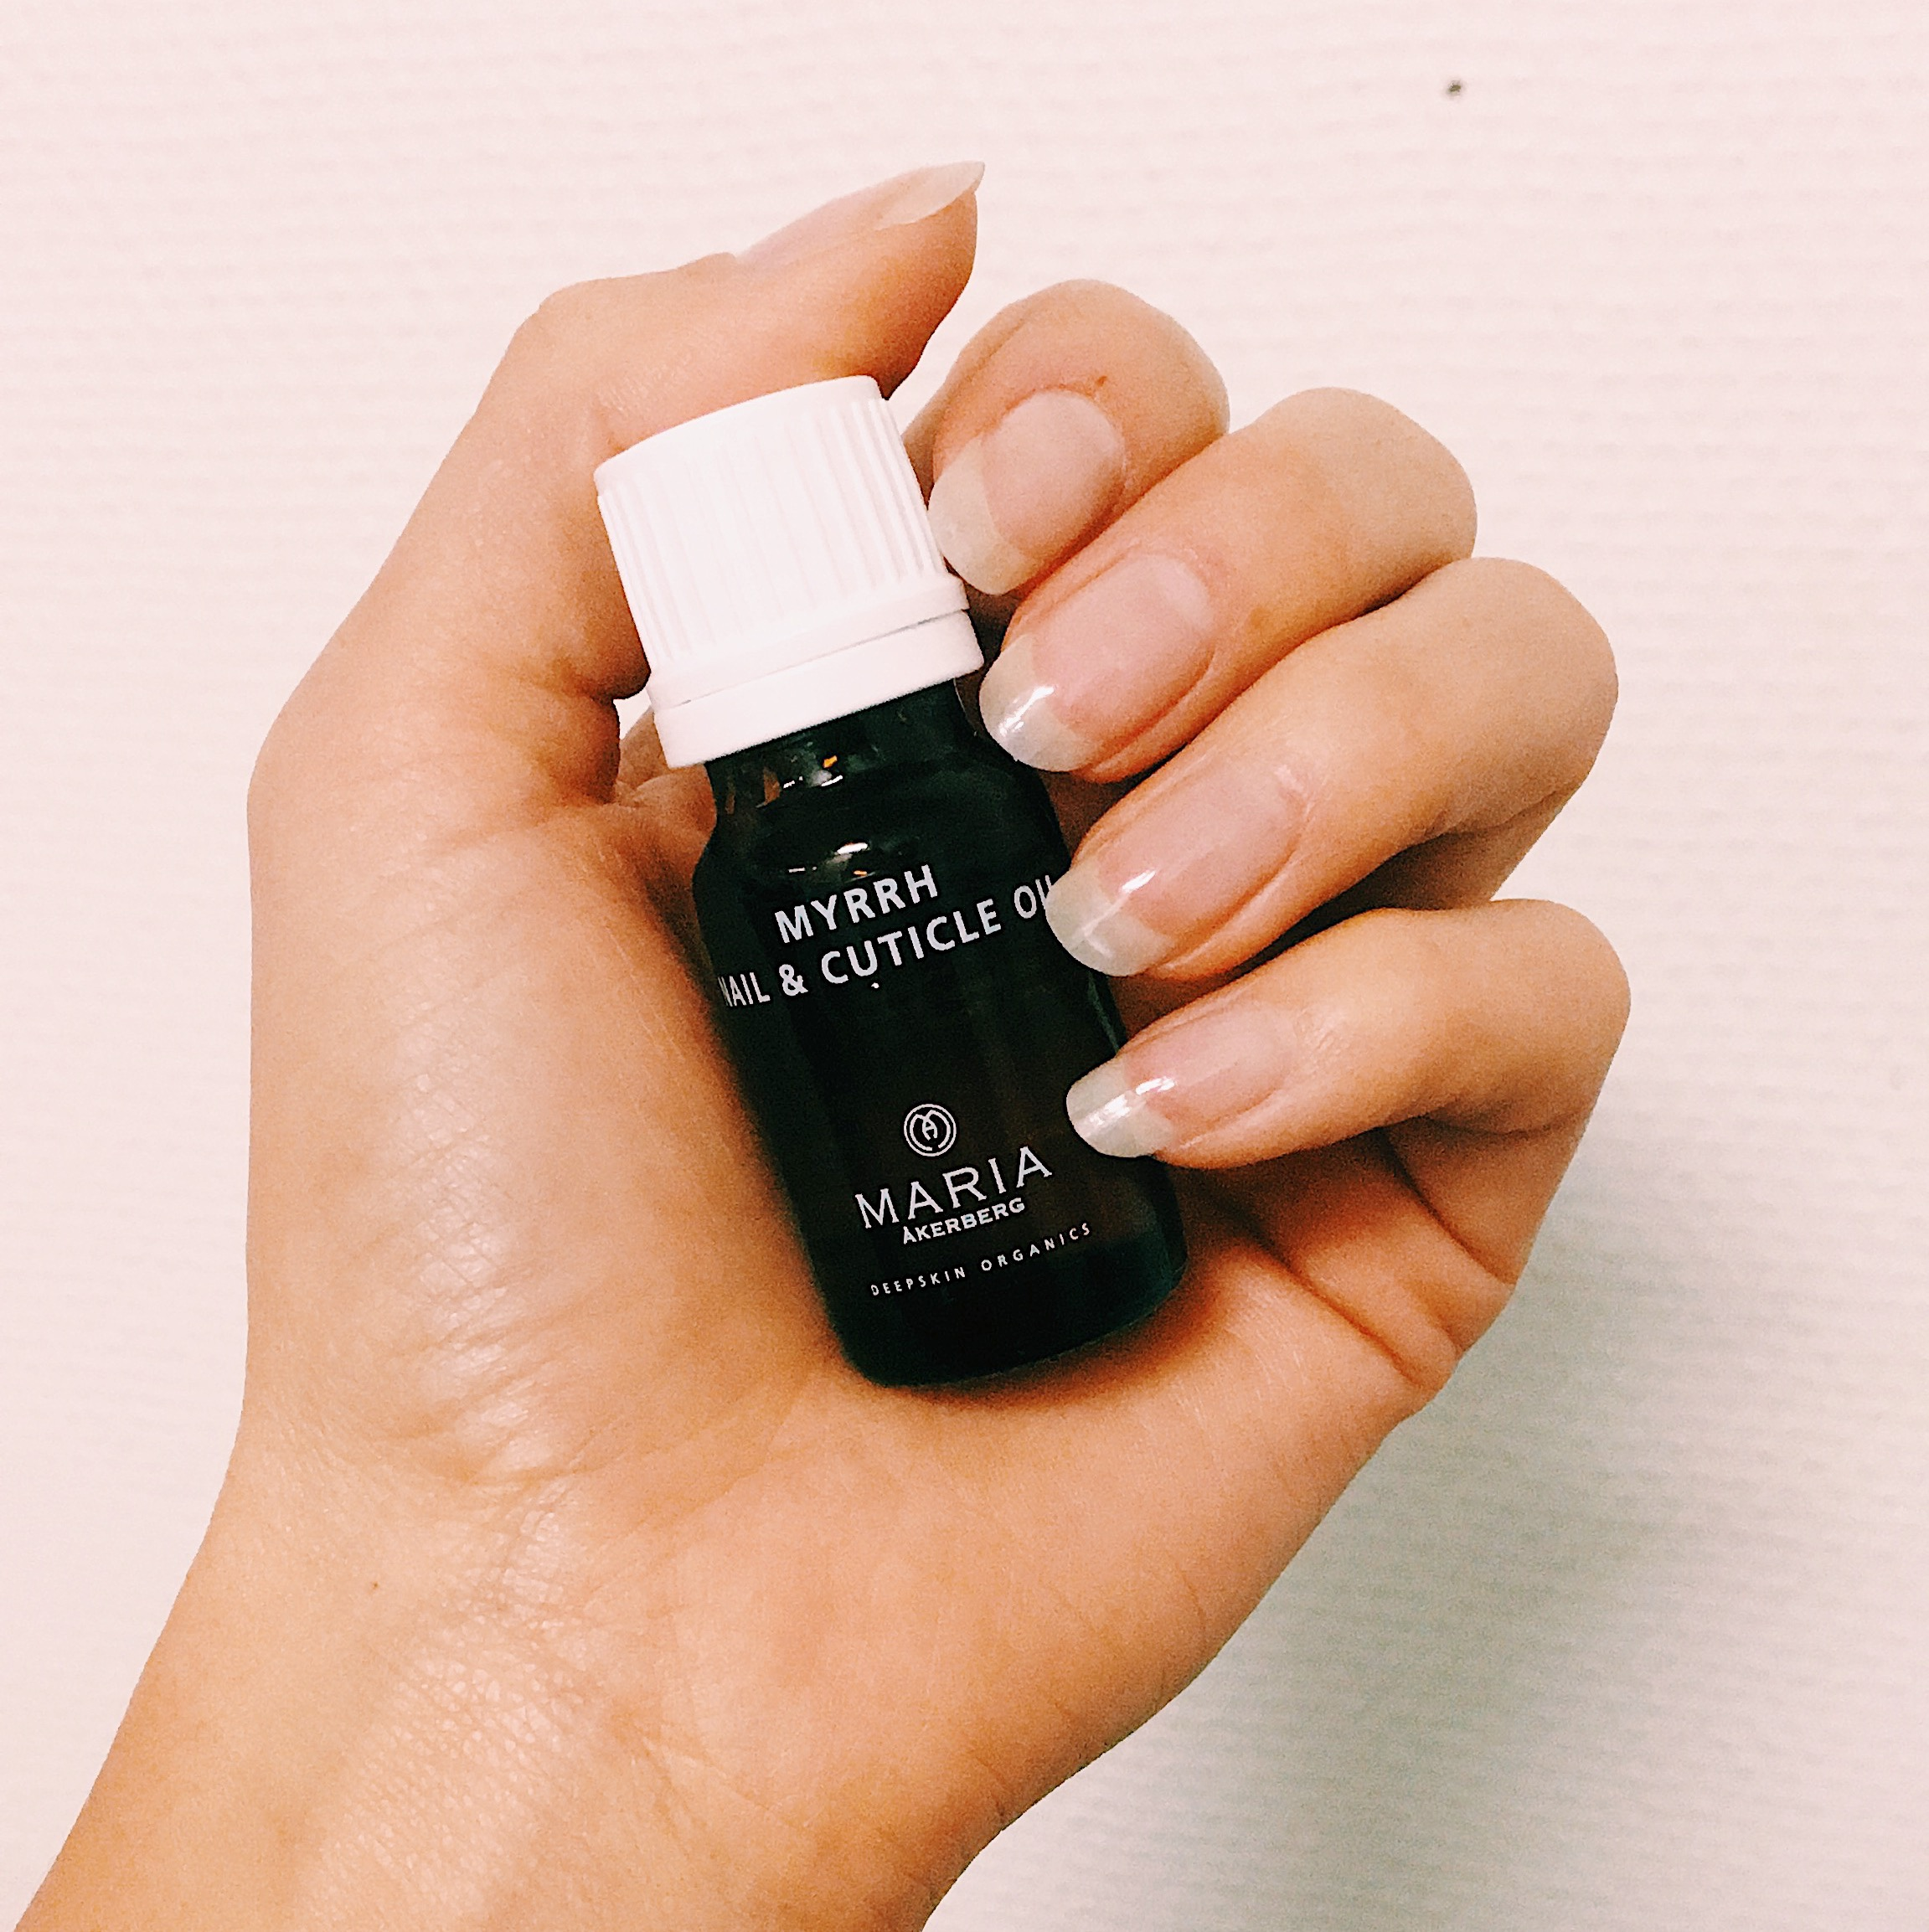 myrrh nail and cuticle oil - nagelolja - maria åkerberg - naglar